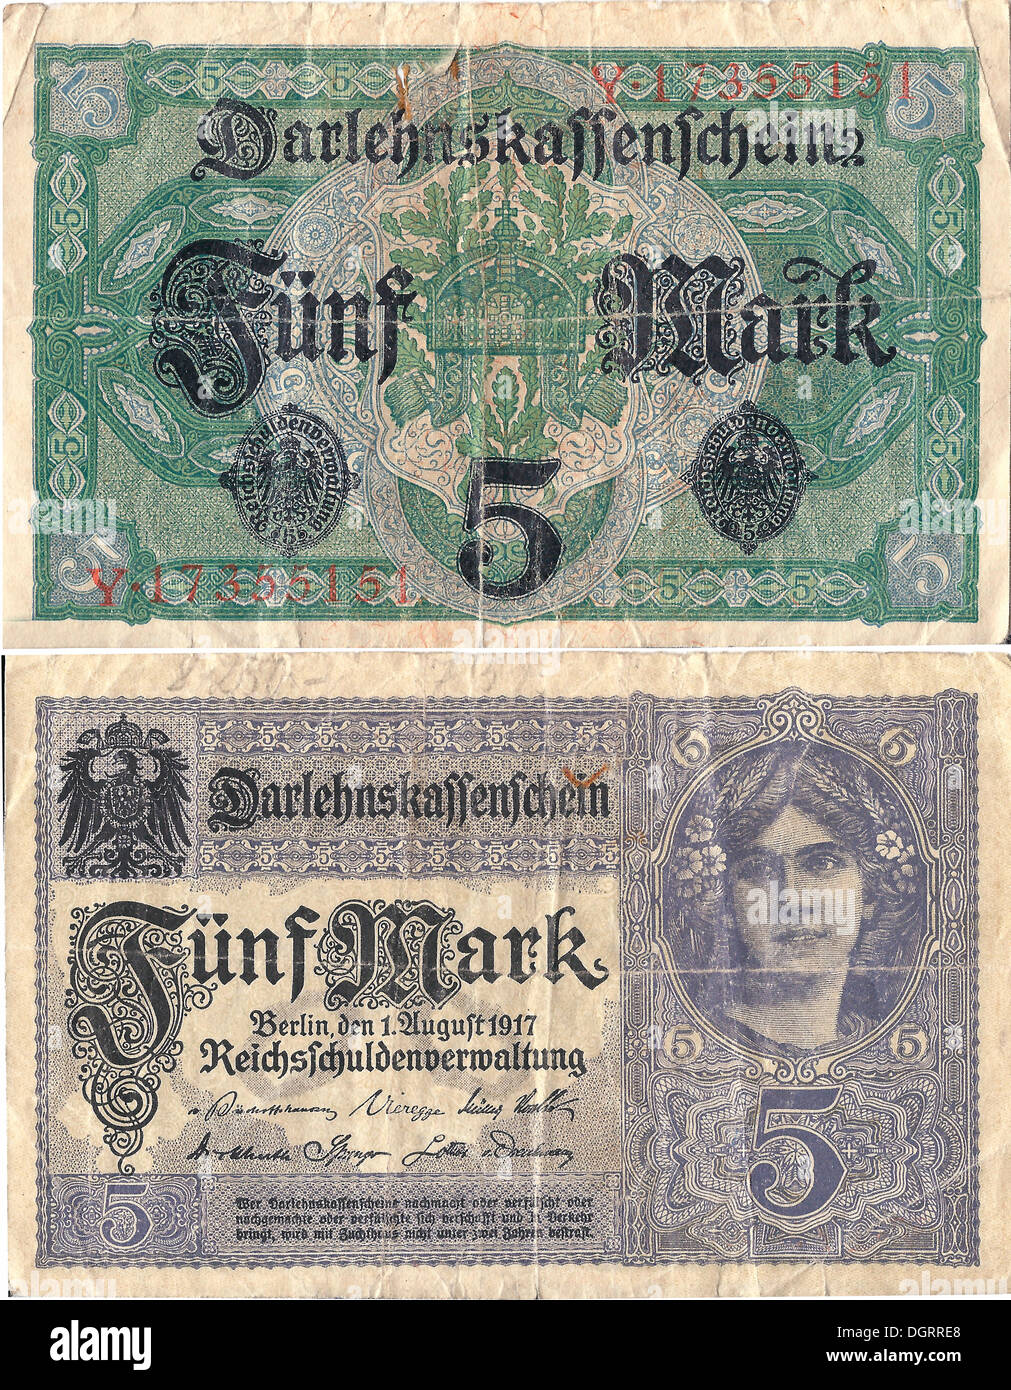 Coupon, front and rear, credit unions bill in the amount of 5 marks, circa 1917, National Debt Office of Germany - Stock Image